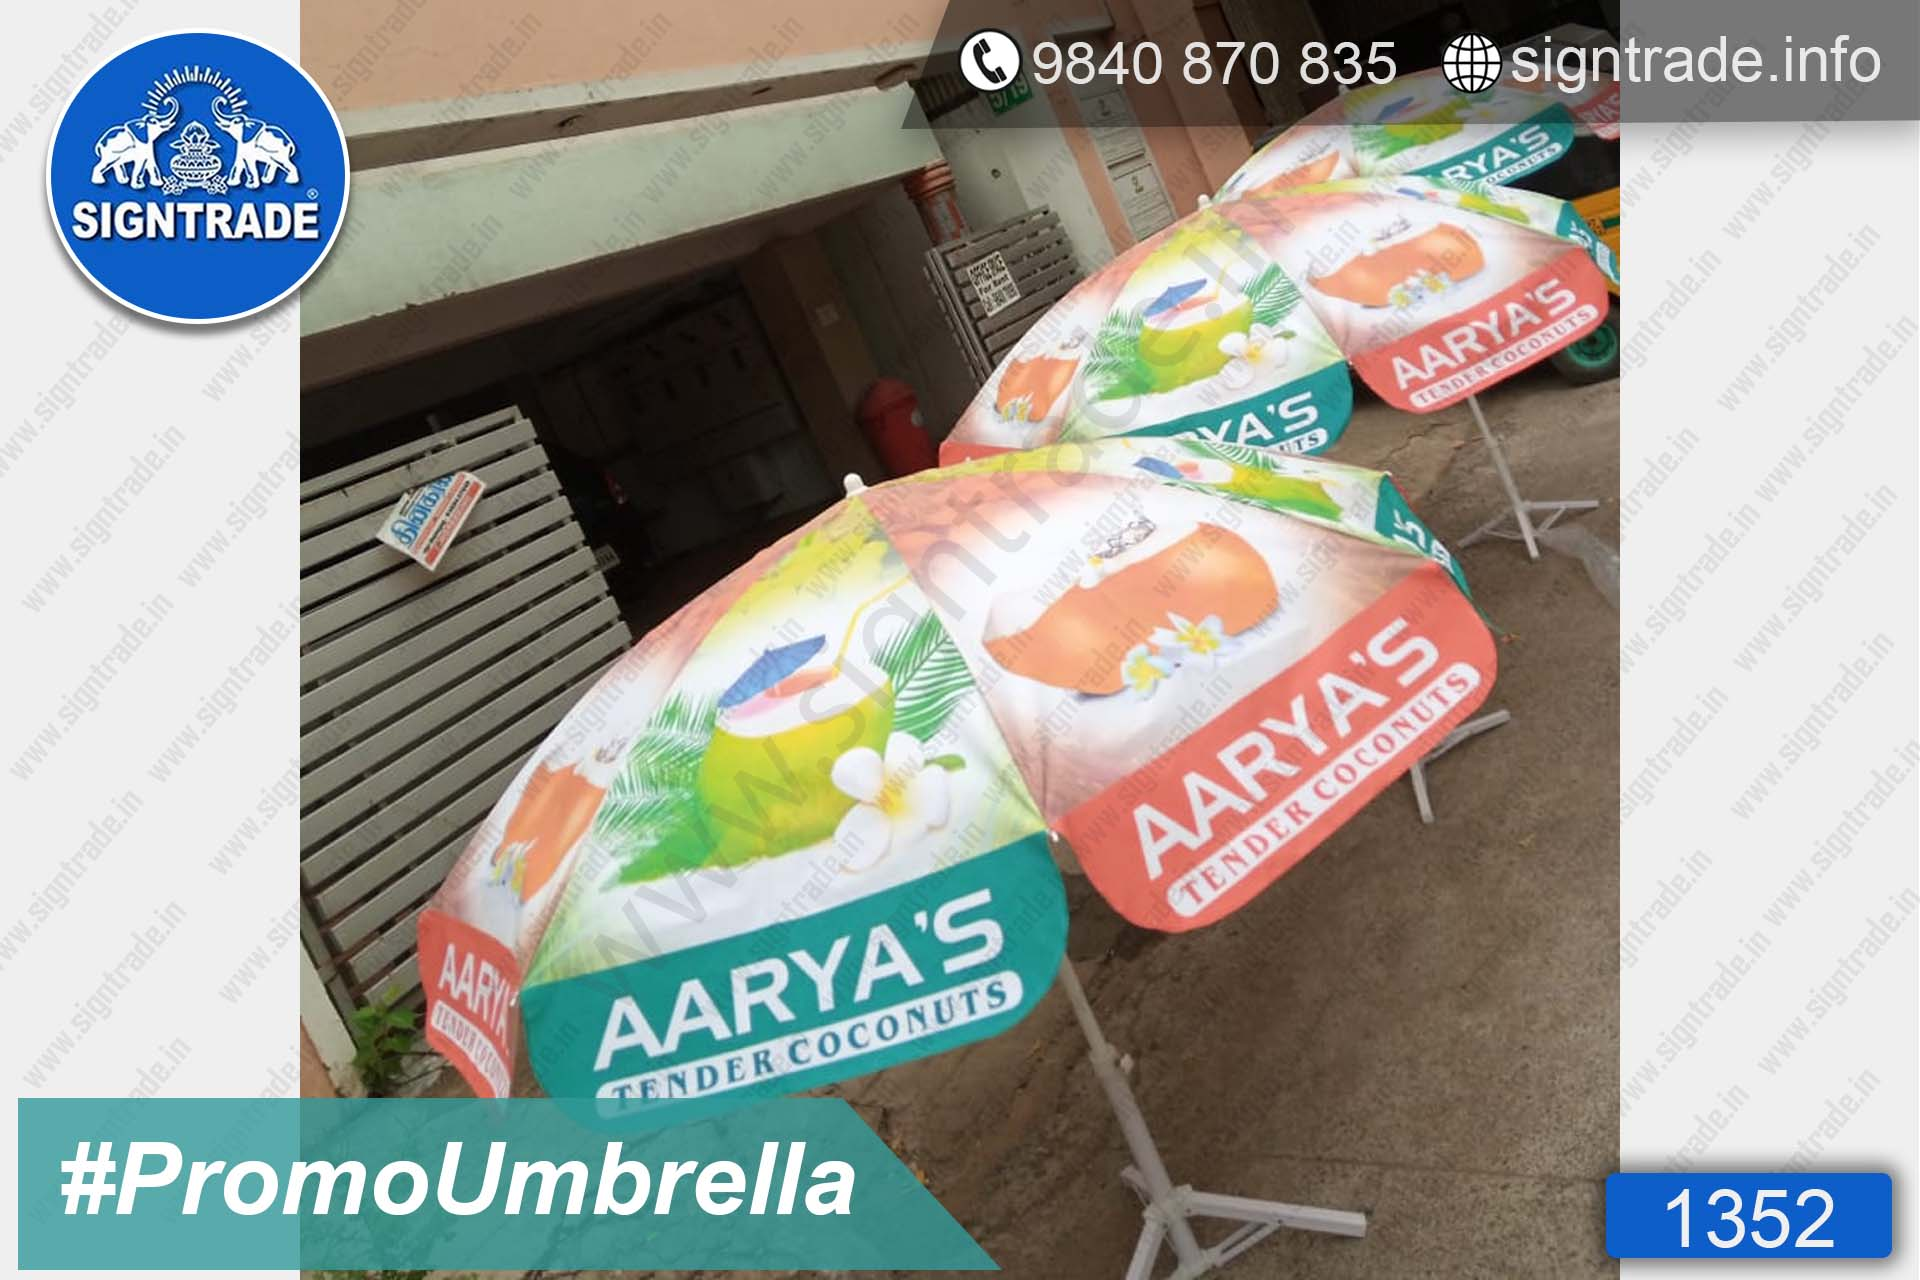 AARYA'S Tender Coconuts - Chennai - SIGNTRADE - Promotional Umbrella Manufactures in Chennai